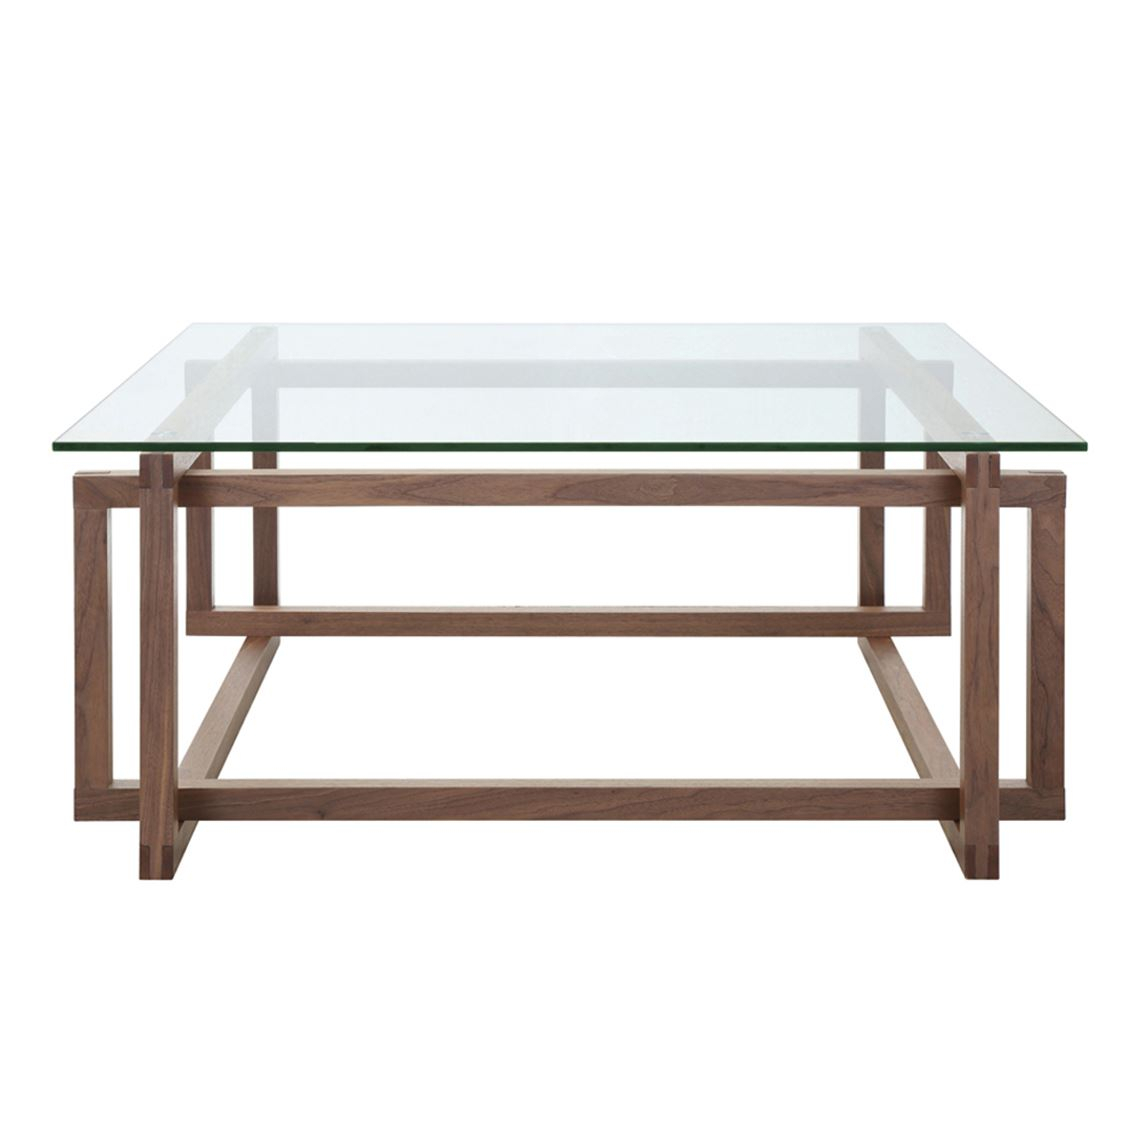 Glass Coffee Tables Perth: 30 Best Ideas Of Kyra Console Tables